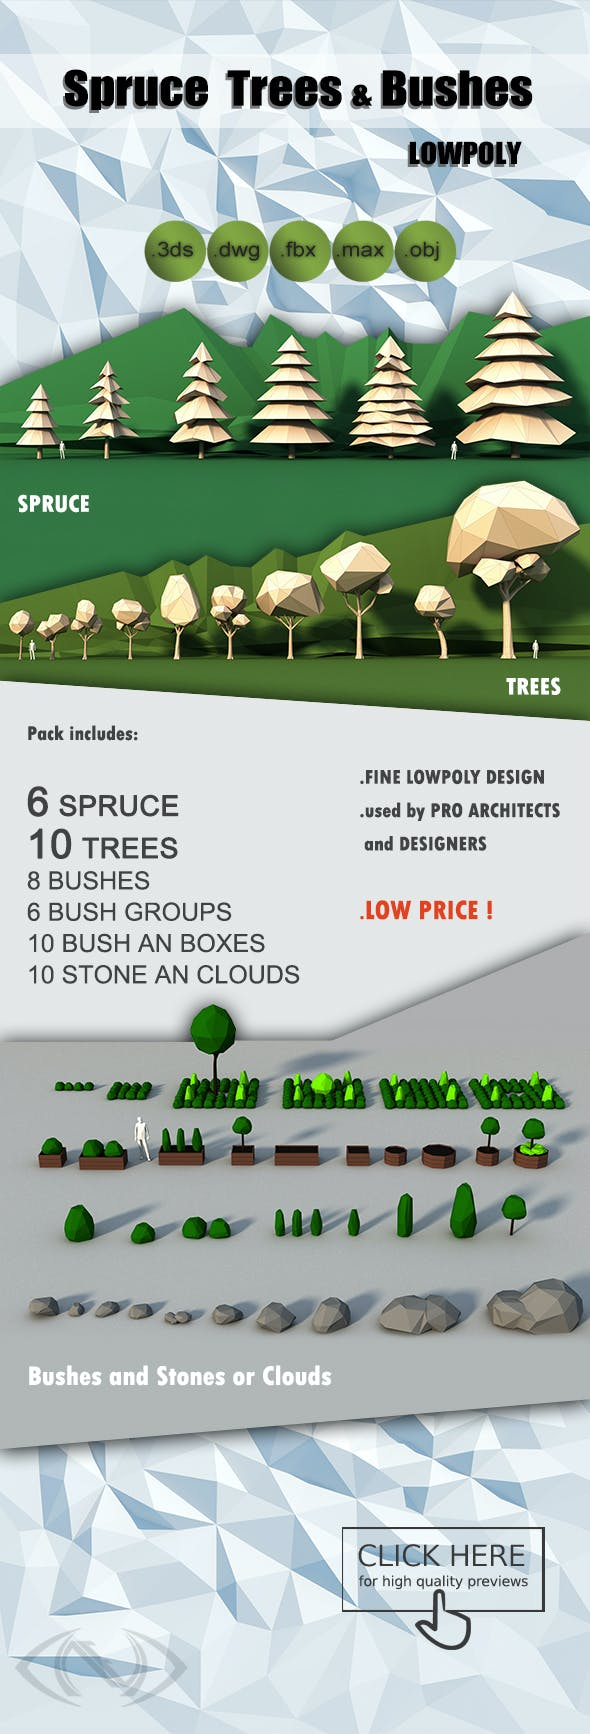 Lowpoly Trees Spruce Bushes Stones Pack - 3DOcean Item for Sale